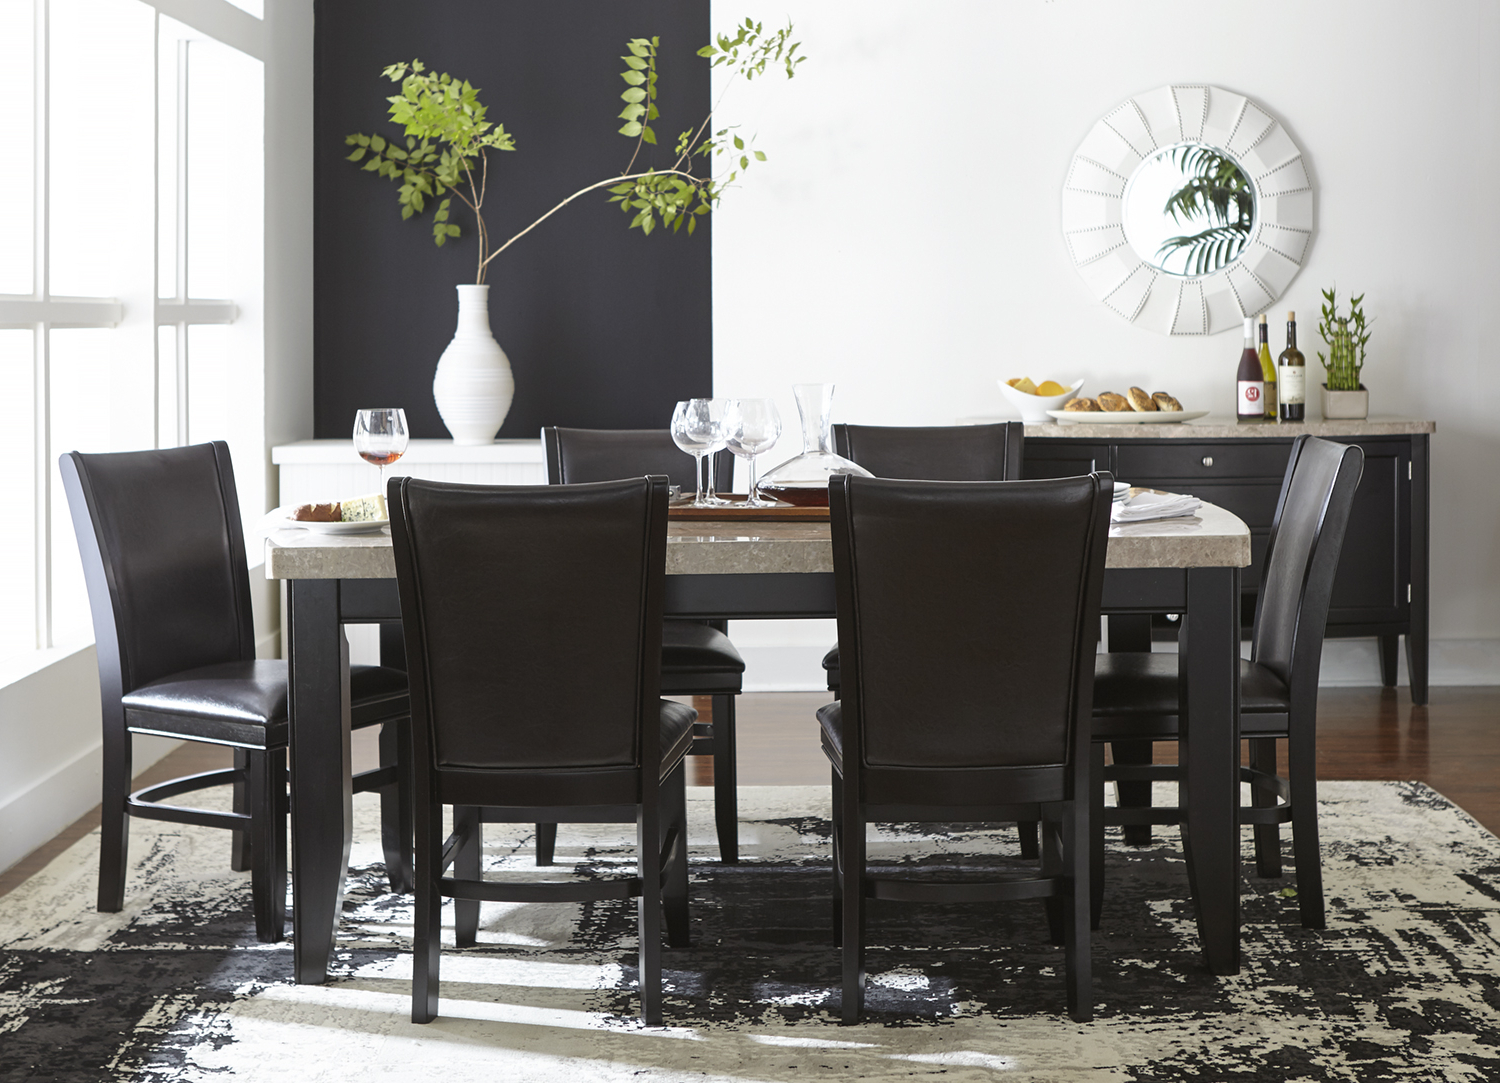 Artefac Contemporary Casual Dining Tables With Regard To Popular Havertys — Casual Contemporary (View 8 of 25)